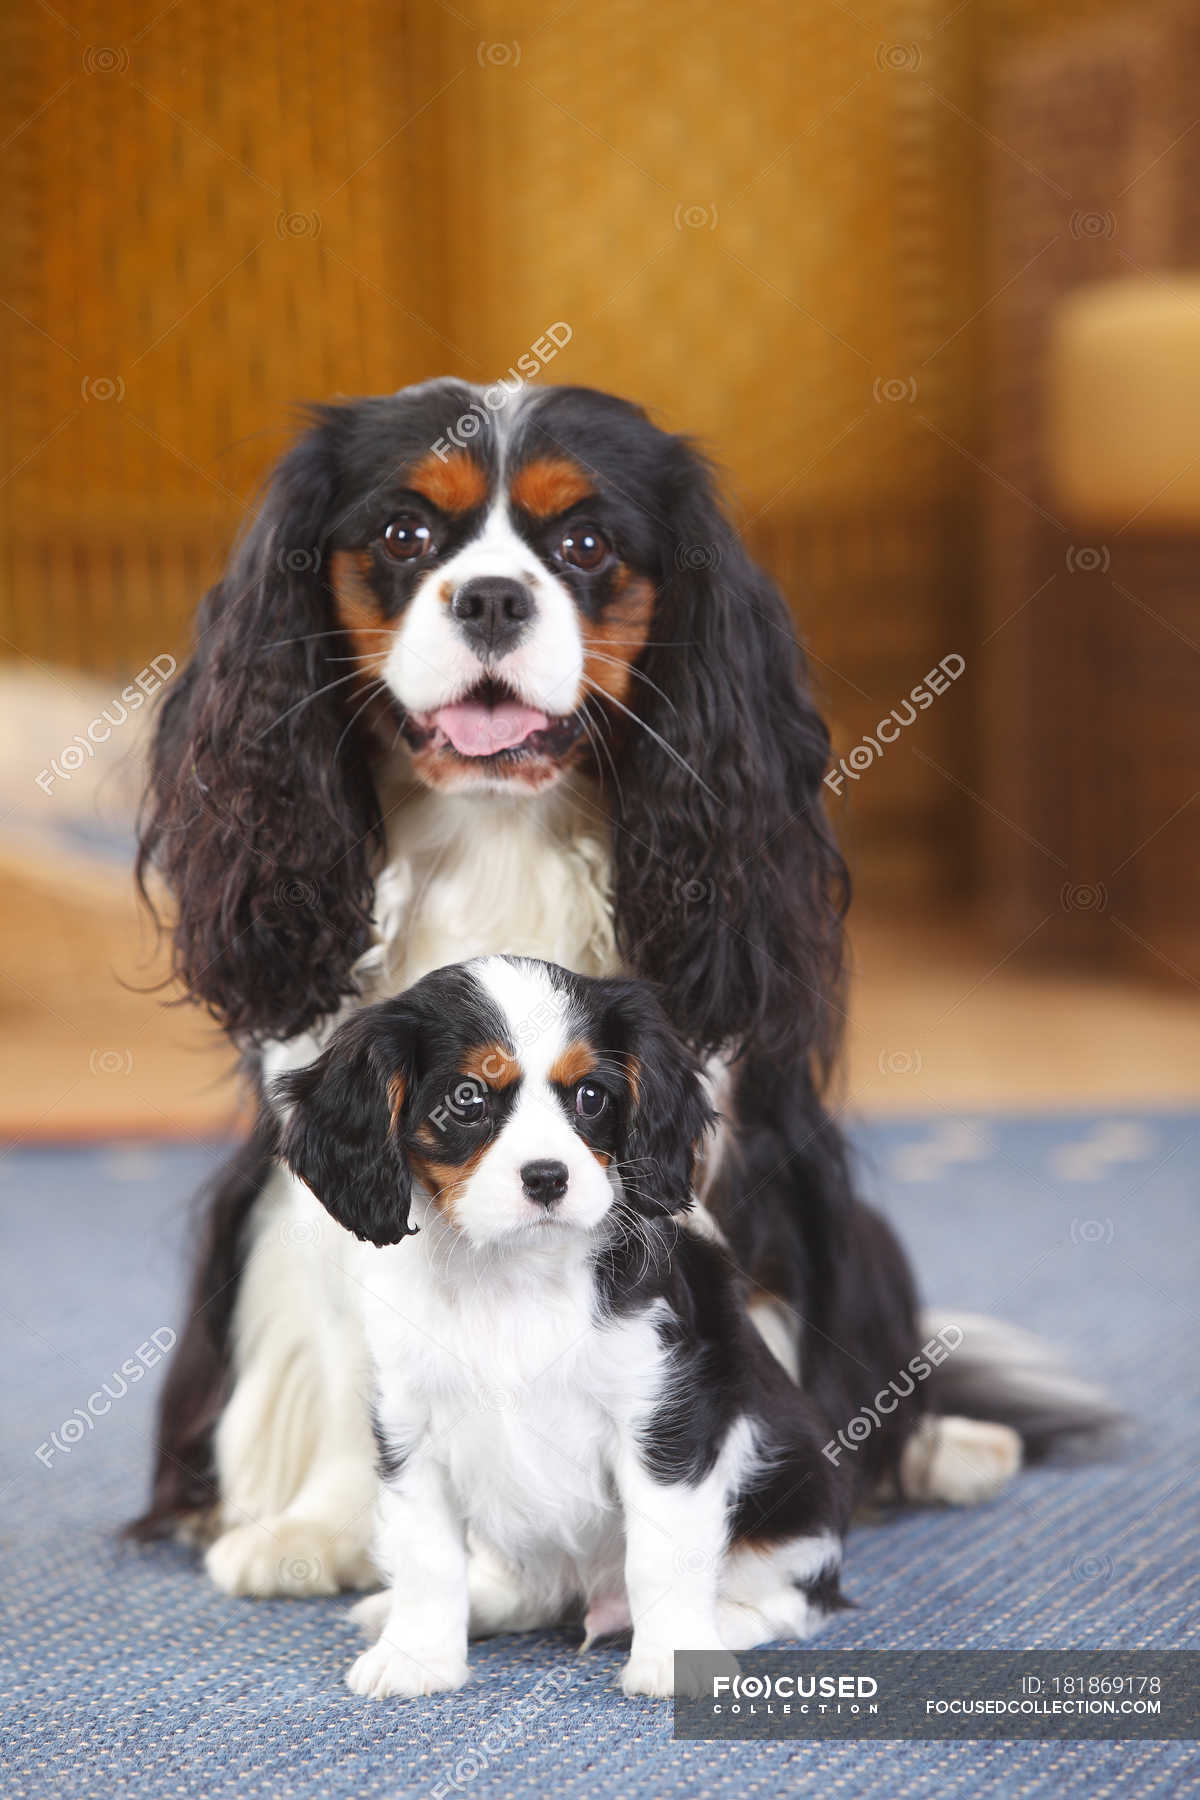 Cavalier King Charles Spaniel With Puppy Sitting On Carpet Furry Daytime Stock Photo 181869178